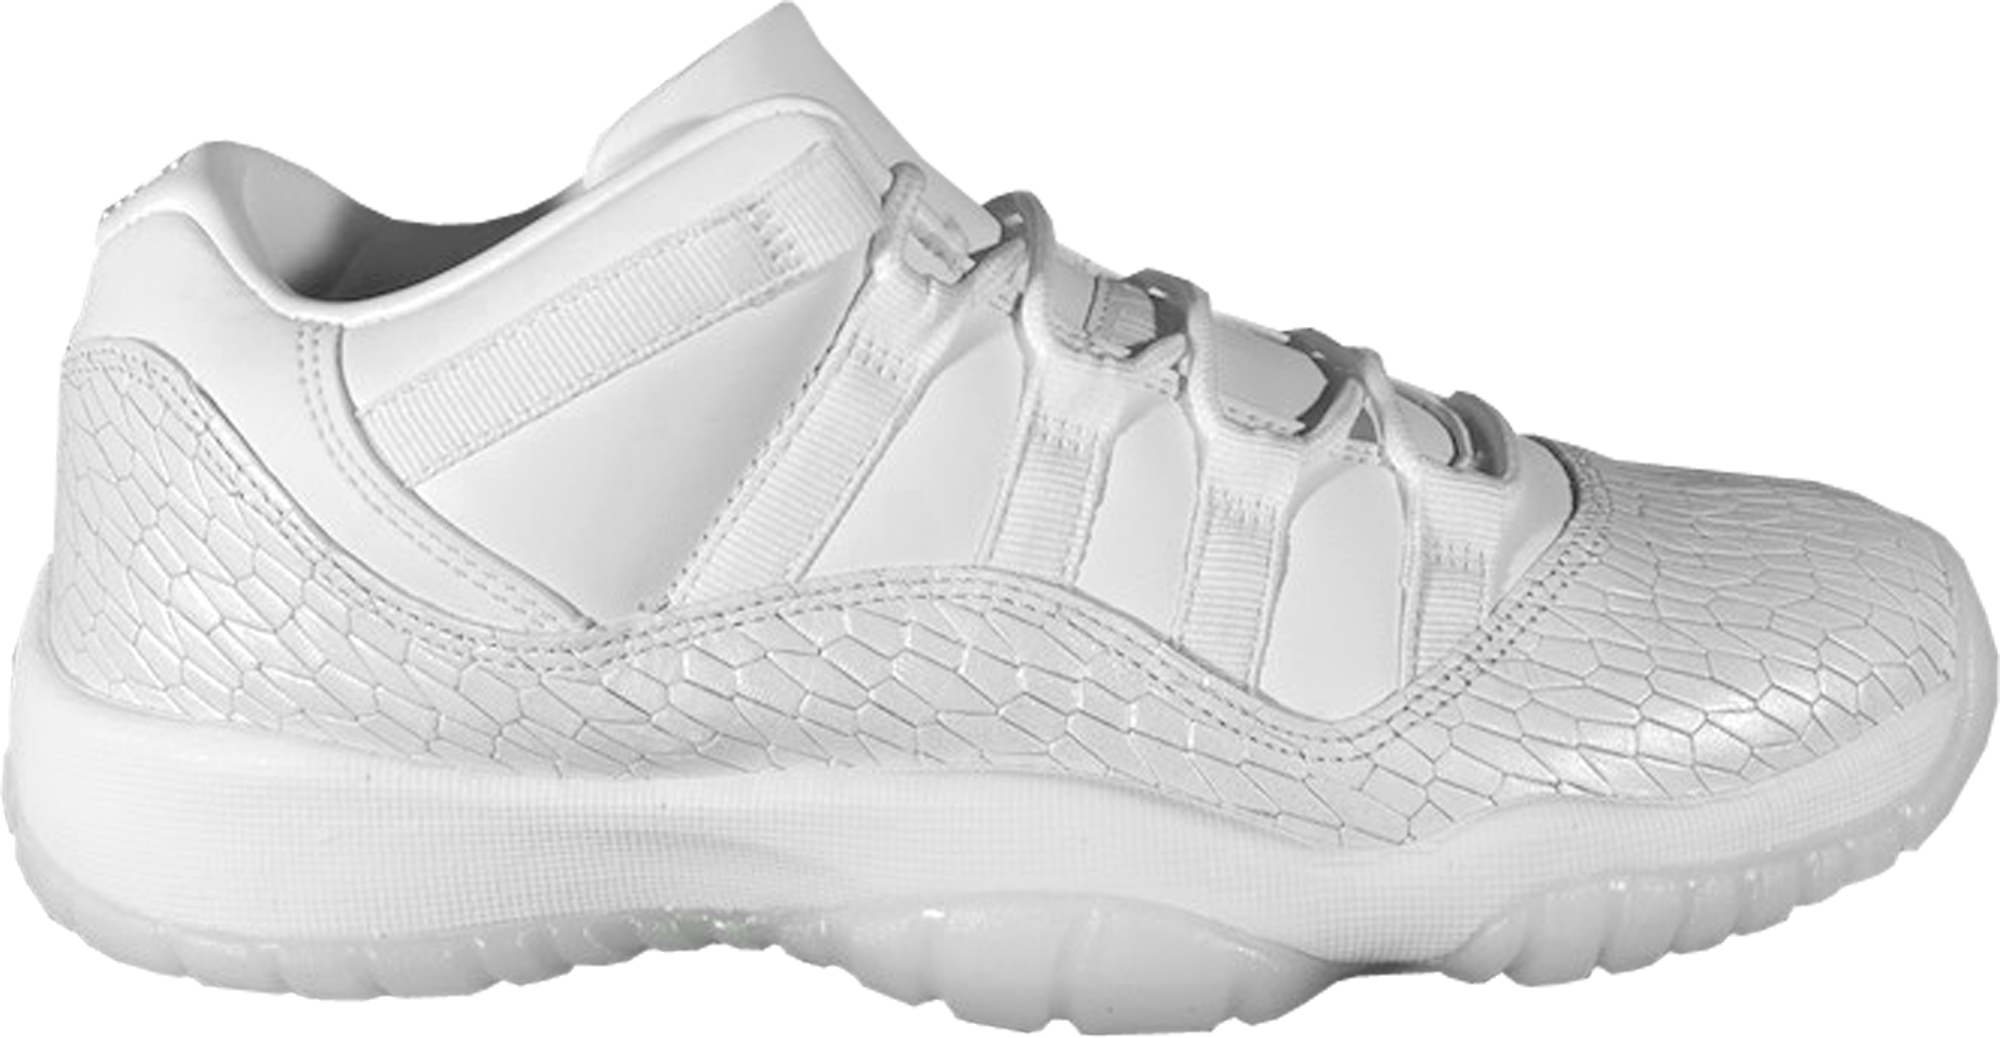 Girls Air Jordan 11 Retro Low Heiress White Ice - StockX News